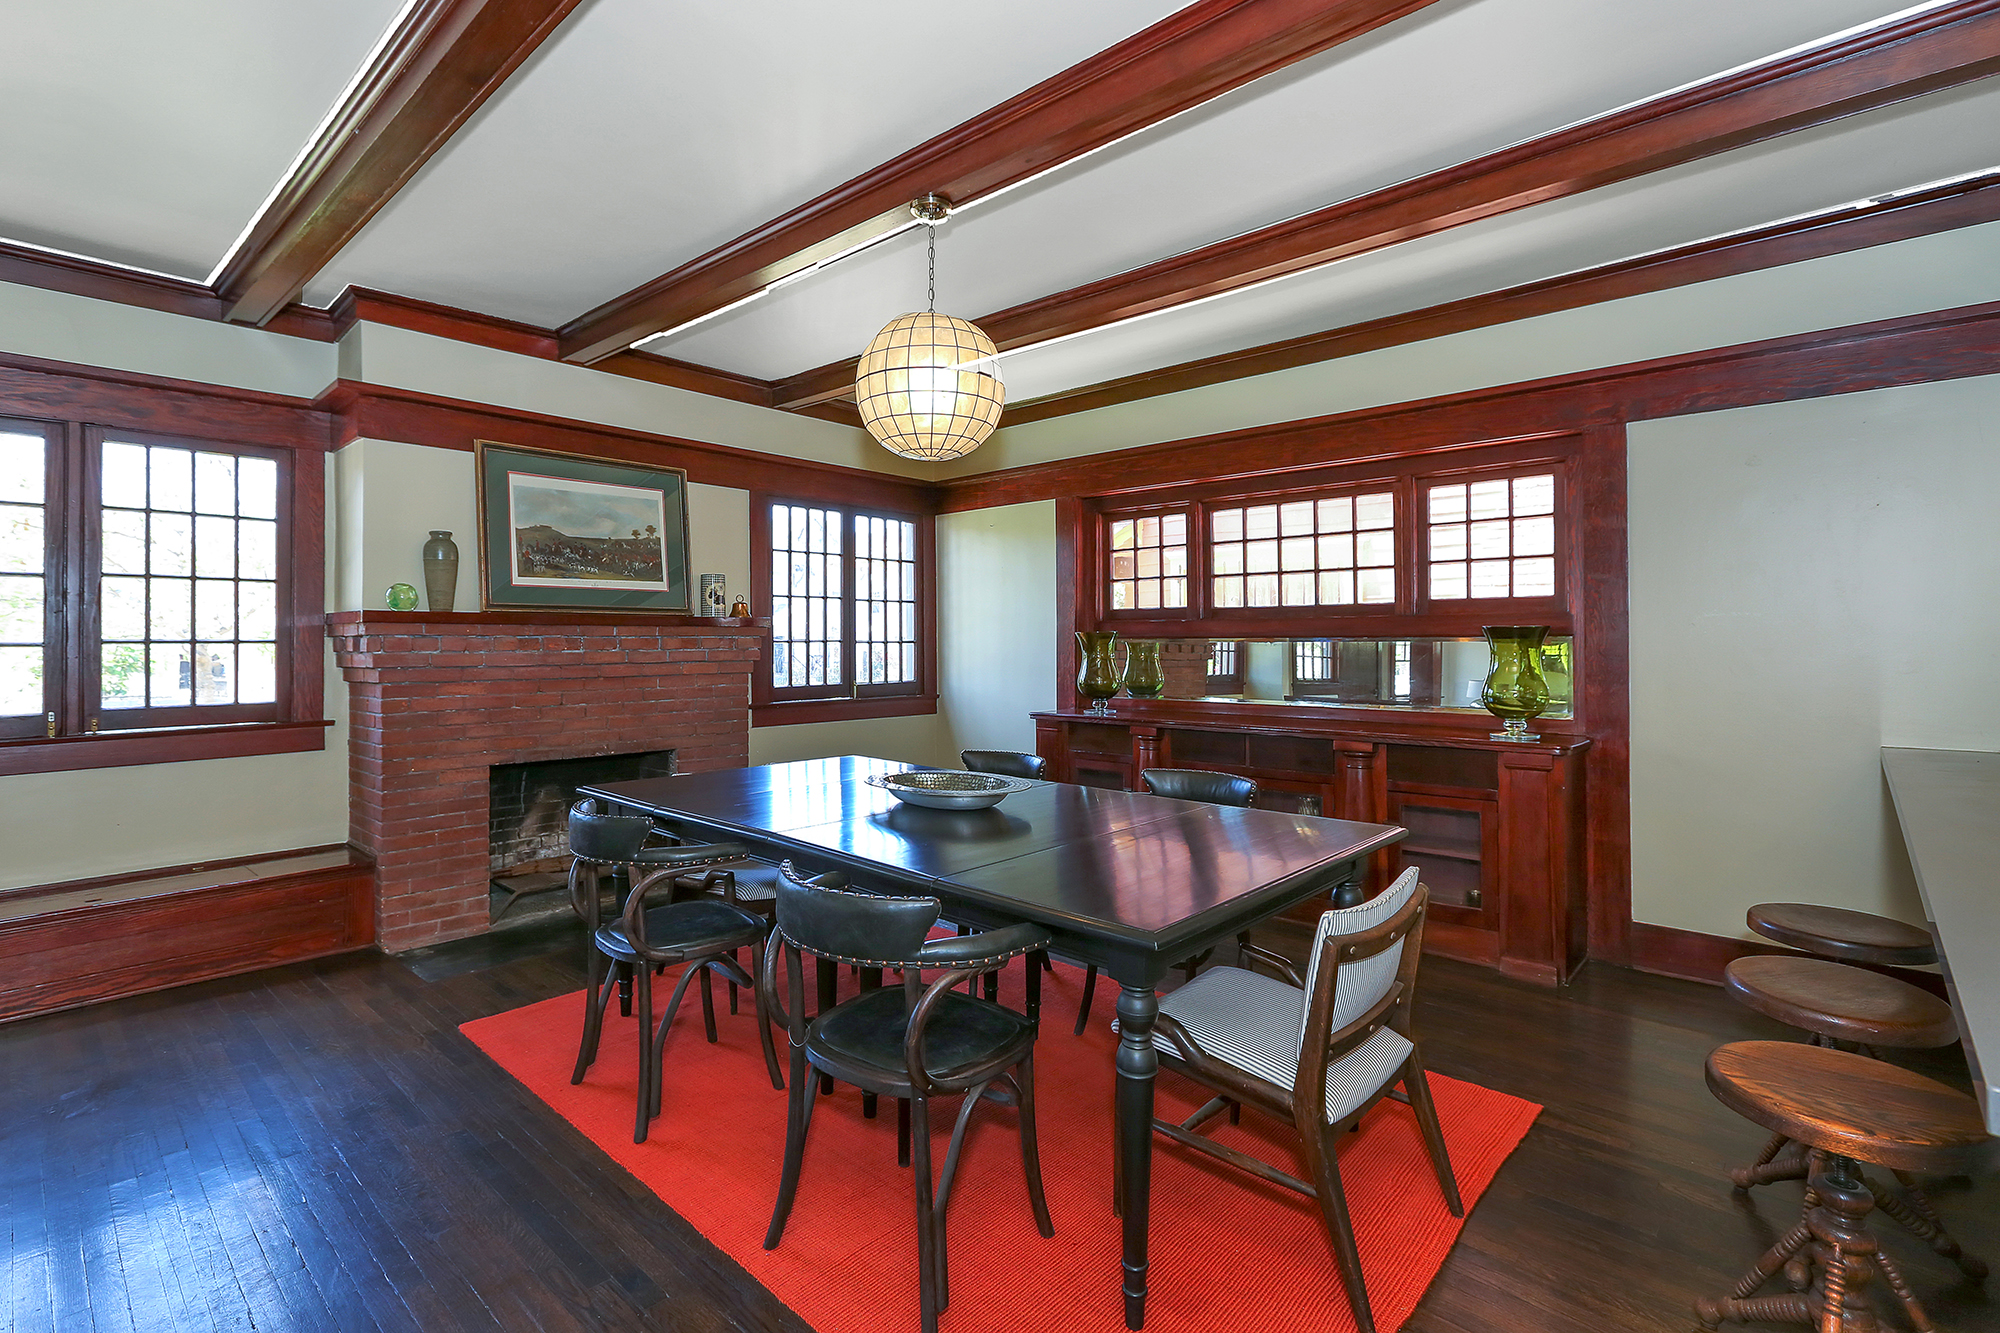 Another uncommon design element, which I love, is the placement of the fireplace in the dining room. And, of course, the beauty of the original built-in hutch must not be overlooked.